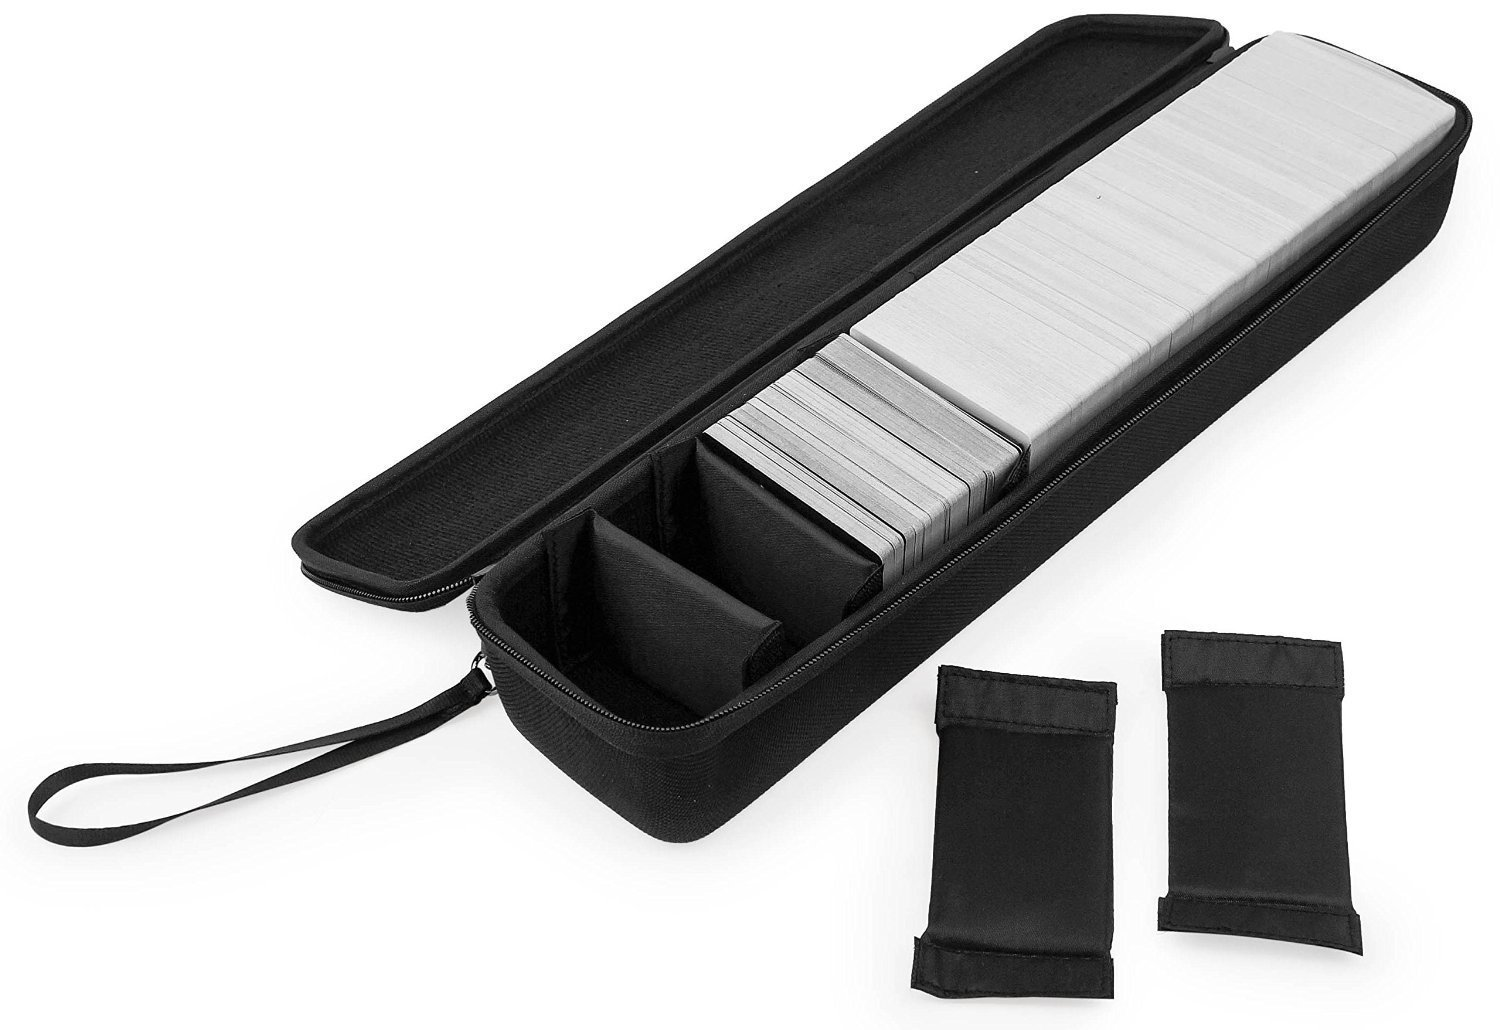 Caseling Extra Large Hard Case for C. A. H. Card Game. Fits the Main Game, All 6 Expansions Plus. Includes 7 Moveable Dividers. Fits up to 1700 Cards. - Card Game Sold Separately. - Black